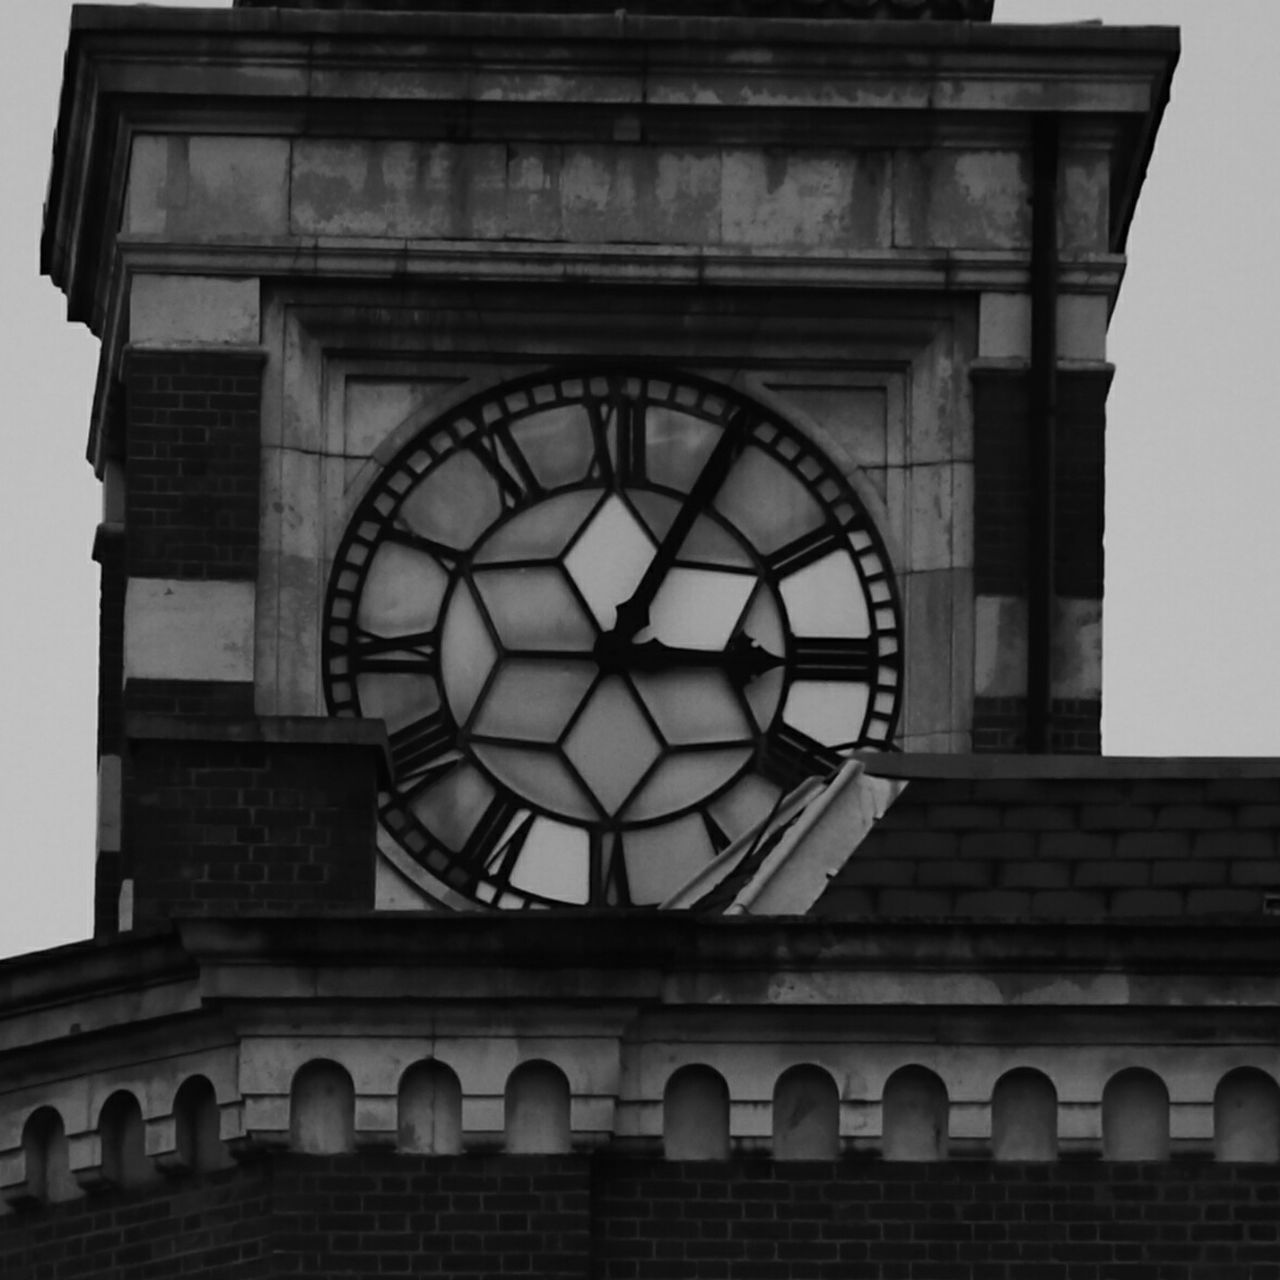 architecture, built structure, building exterior, clock, low angle view, time, arch, no people, window, outdoors, clock tower, clock face, day, history, travel destinations, sky, roman numeral, city, minute hand, hour hand, close-up